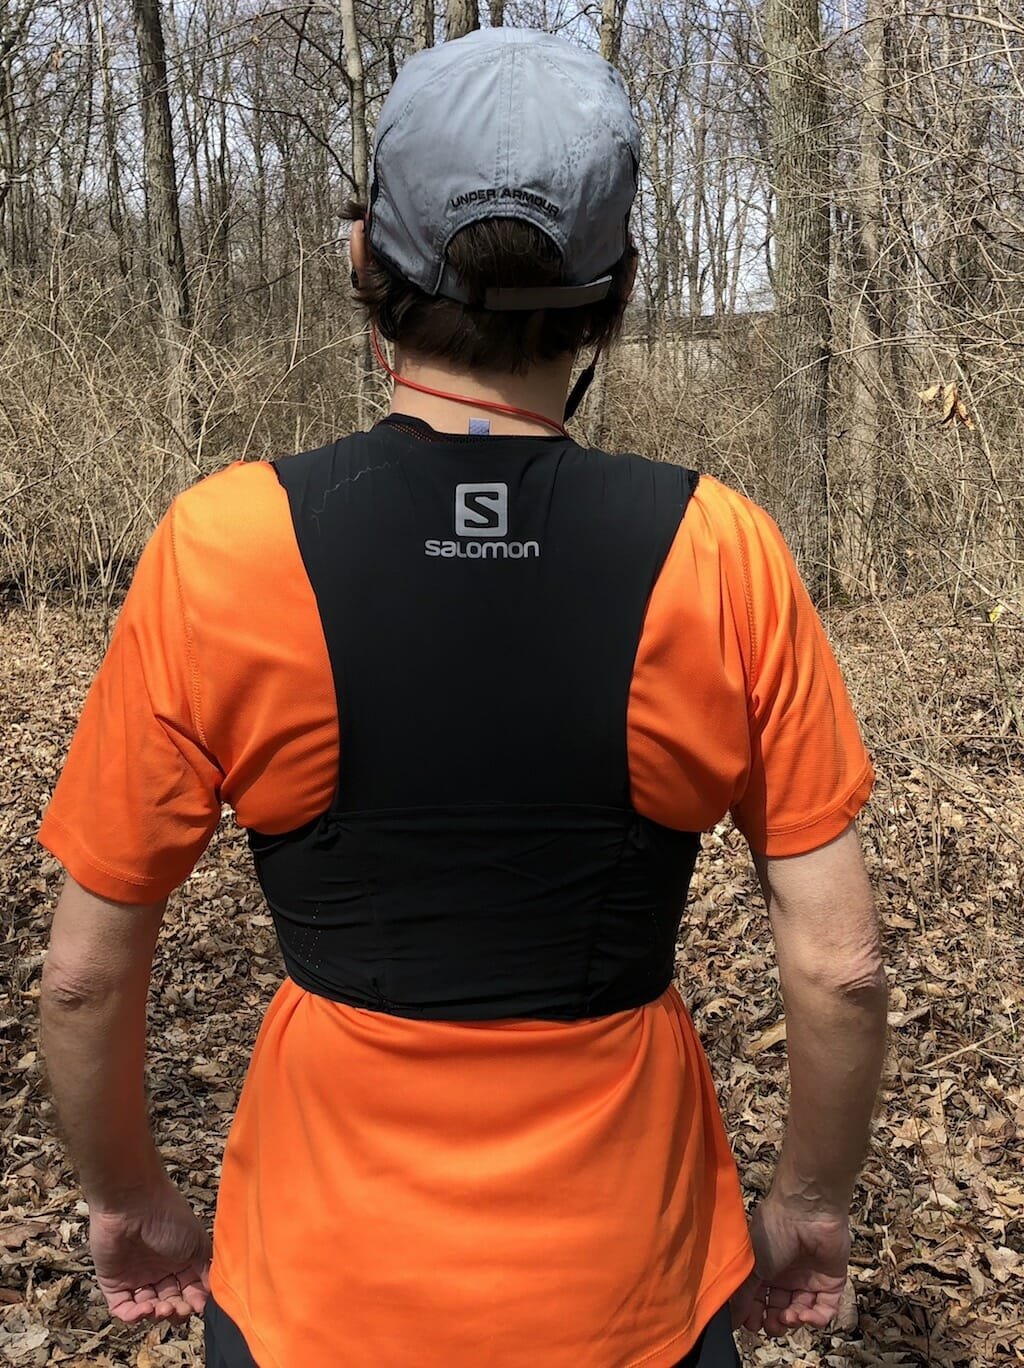 meilleur service 4a533 507ab Journey to 100K: Picking the right vest for ultra marathons ...